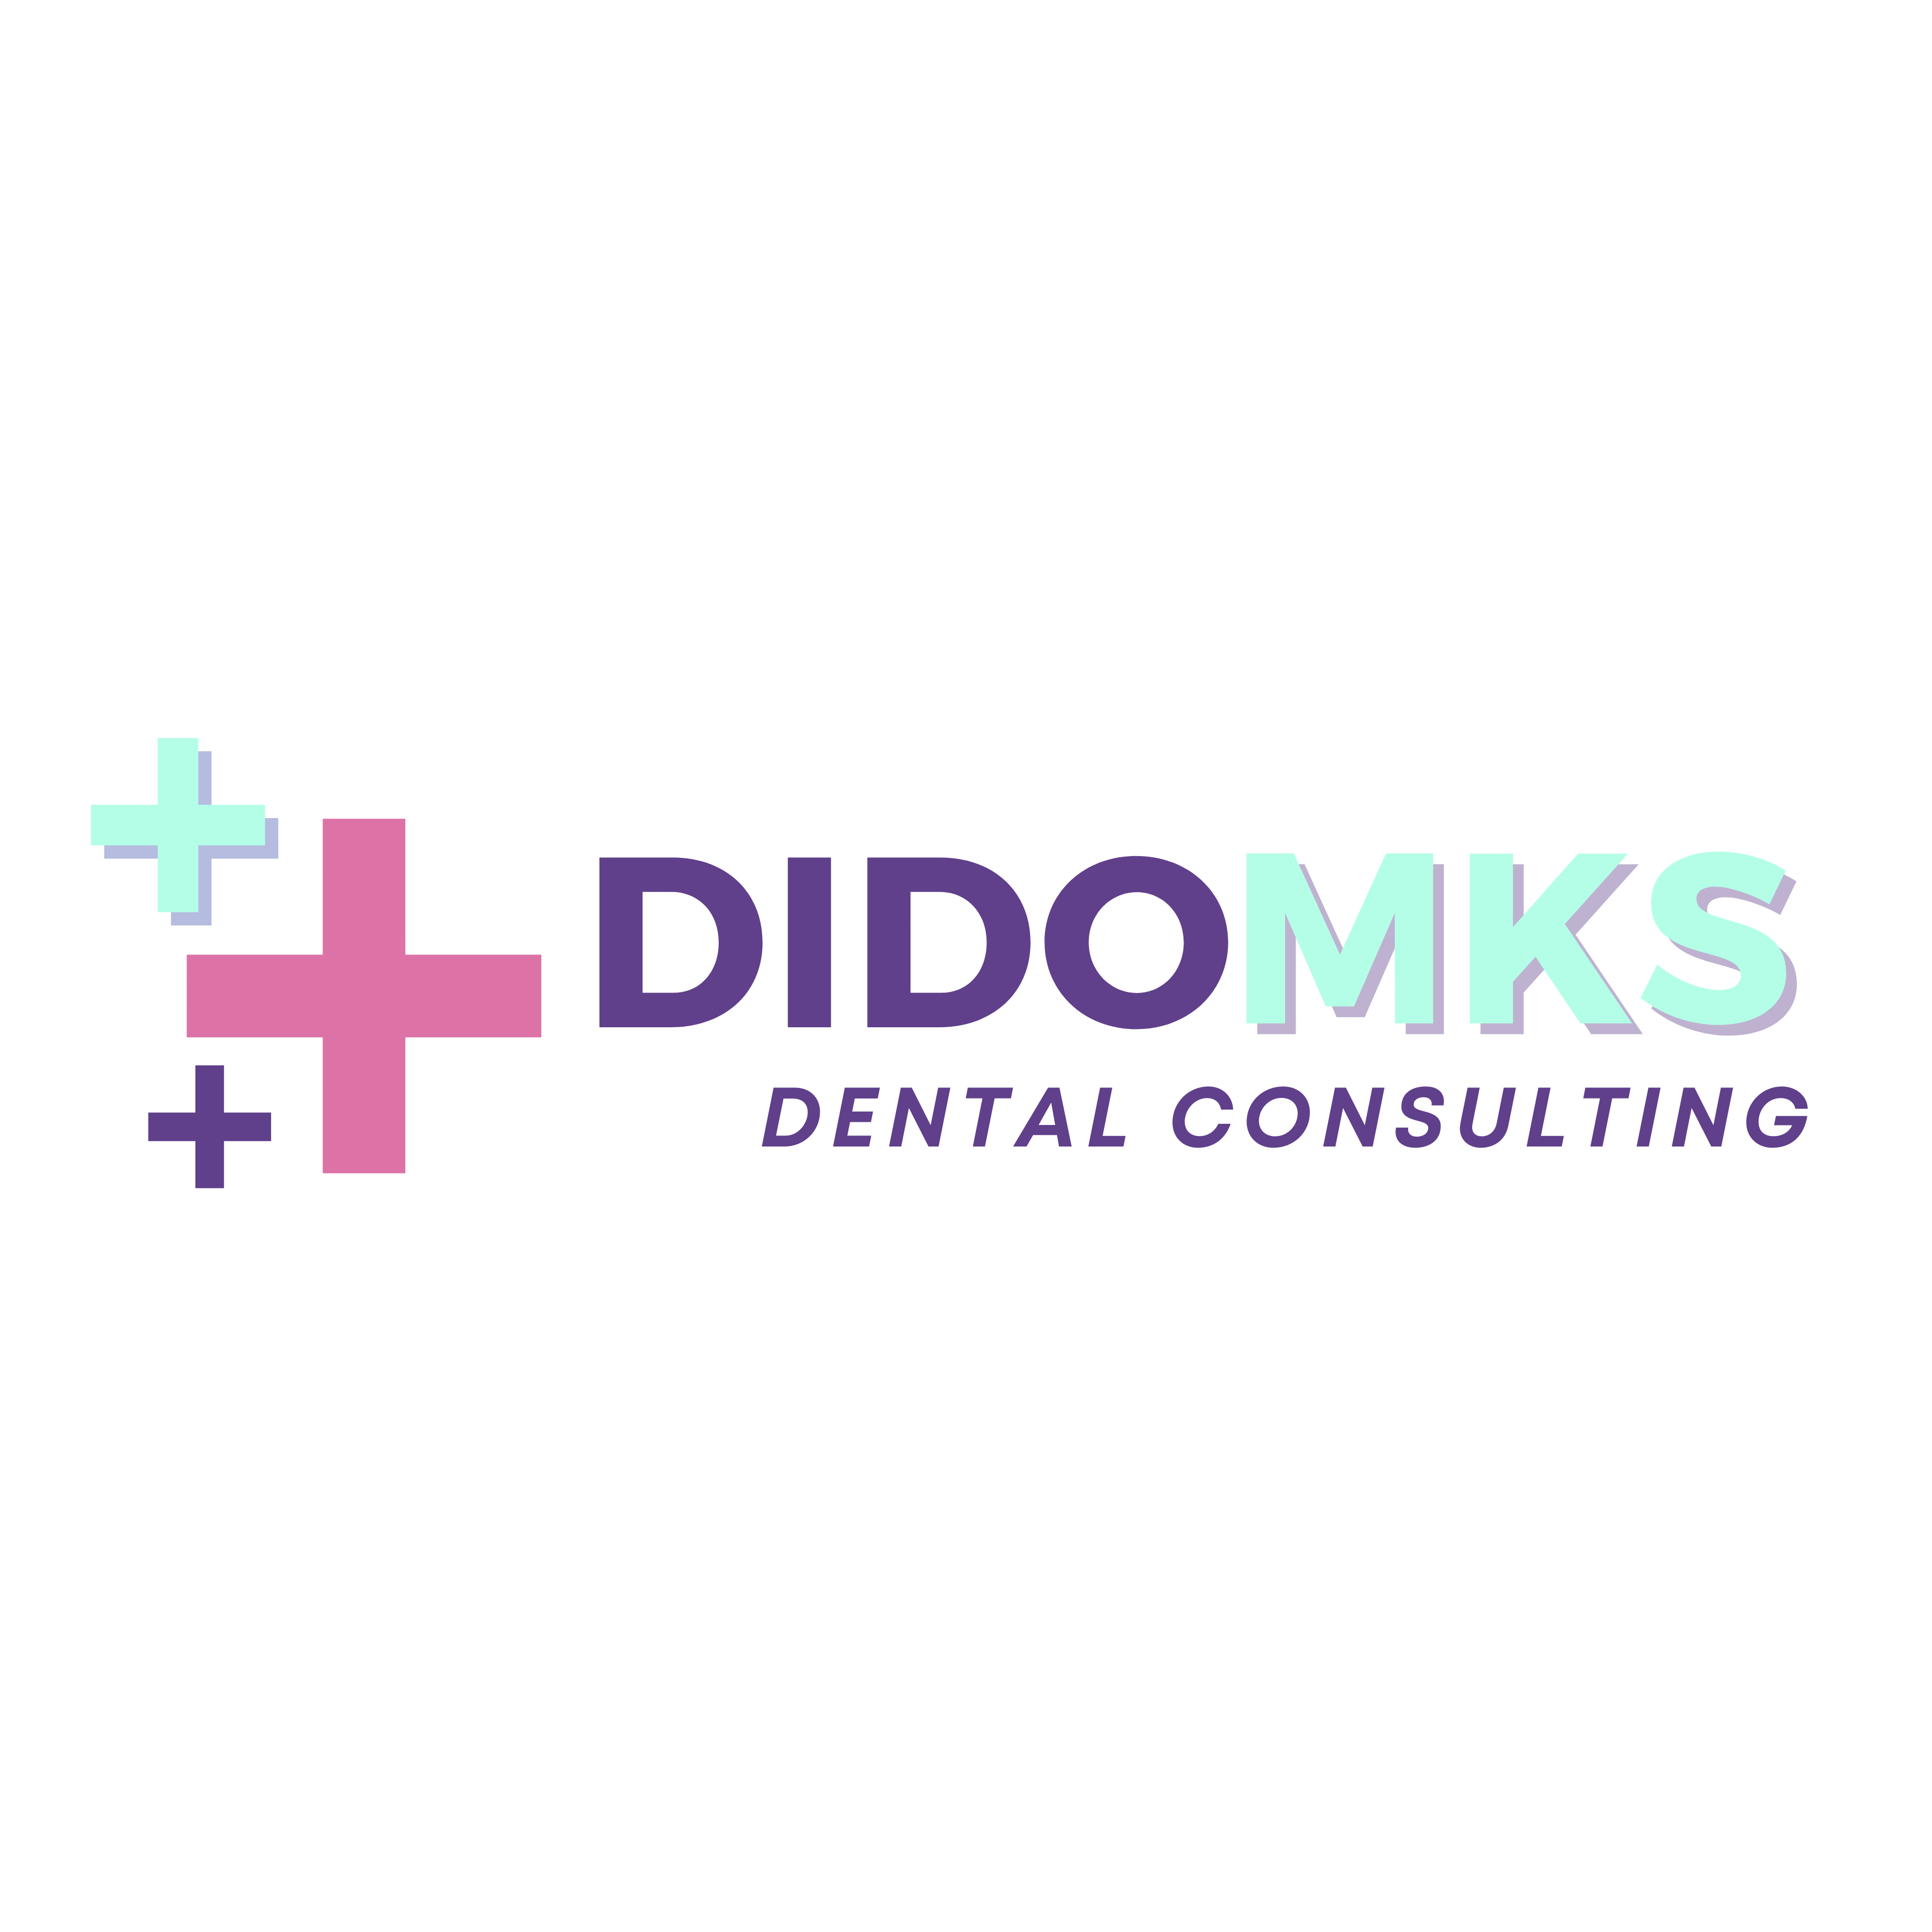 Dental Consulting DidoMks